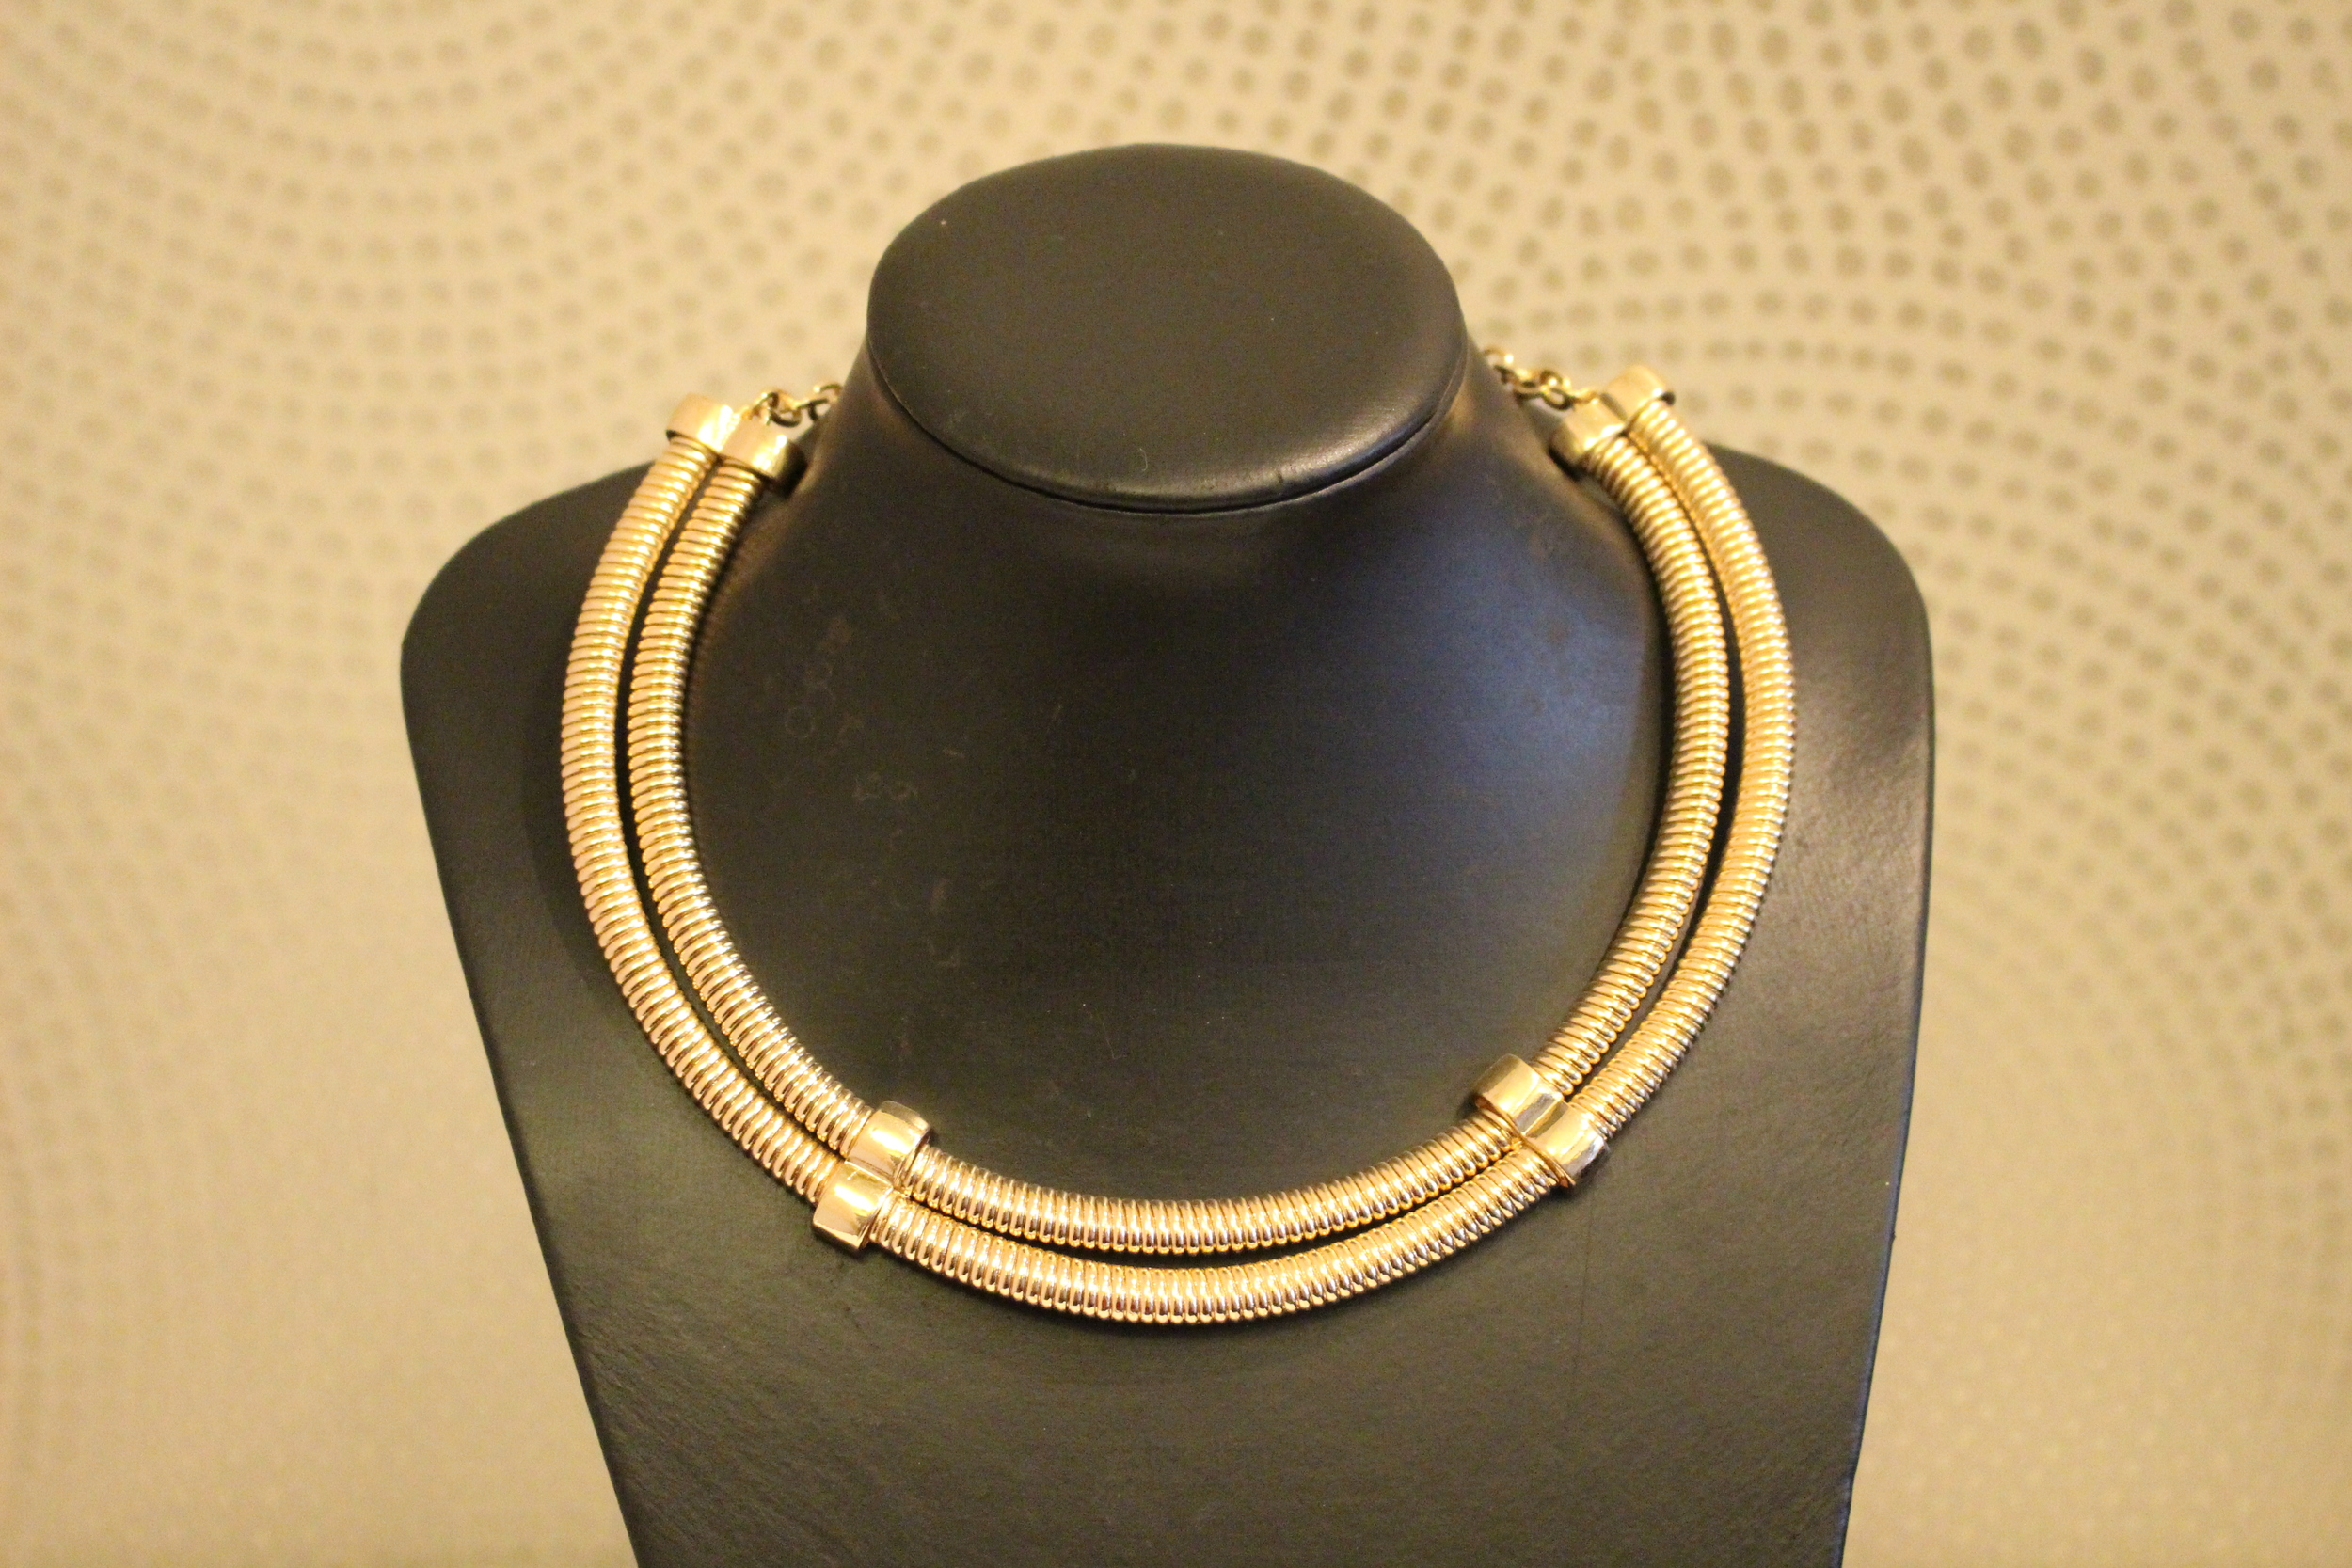 gold necklace tracy j accra